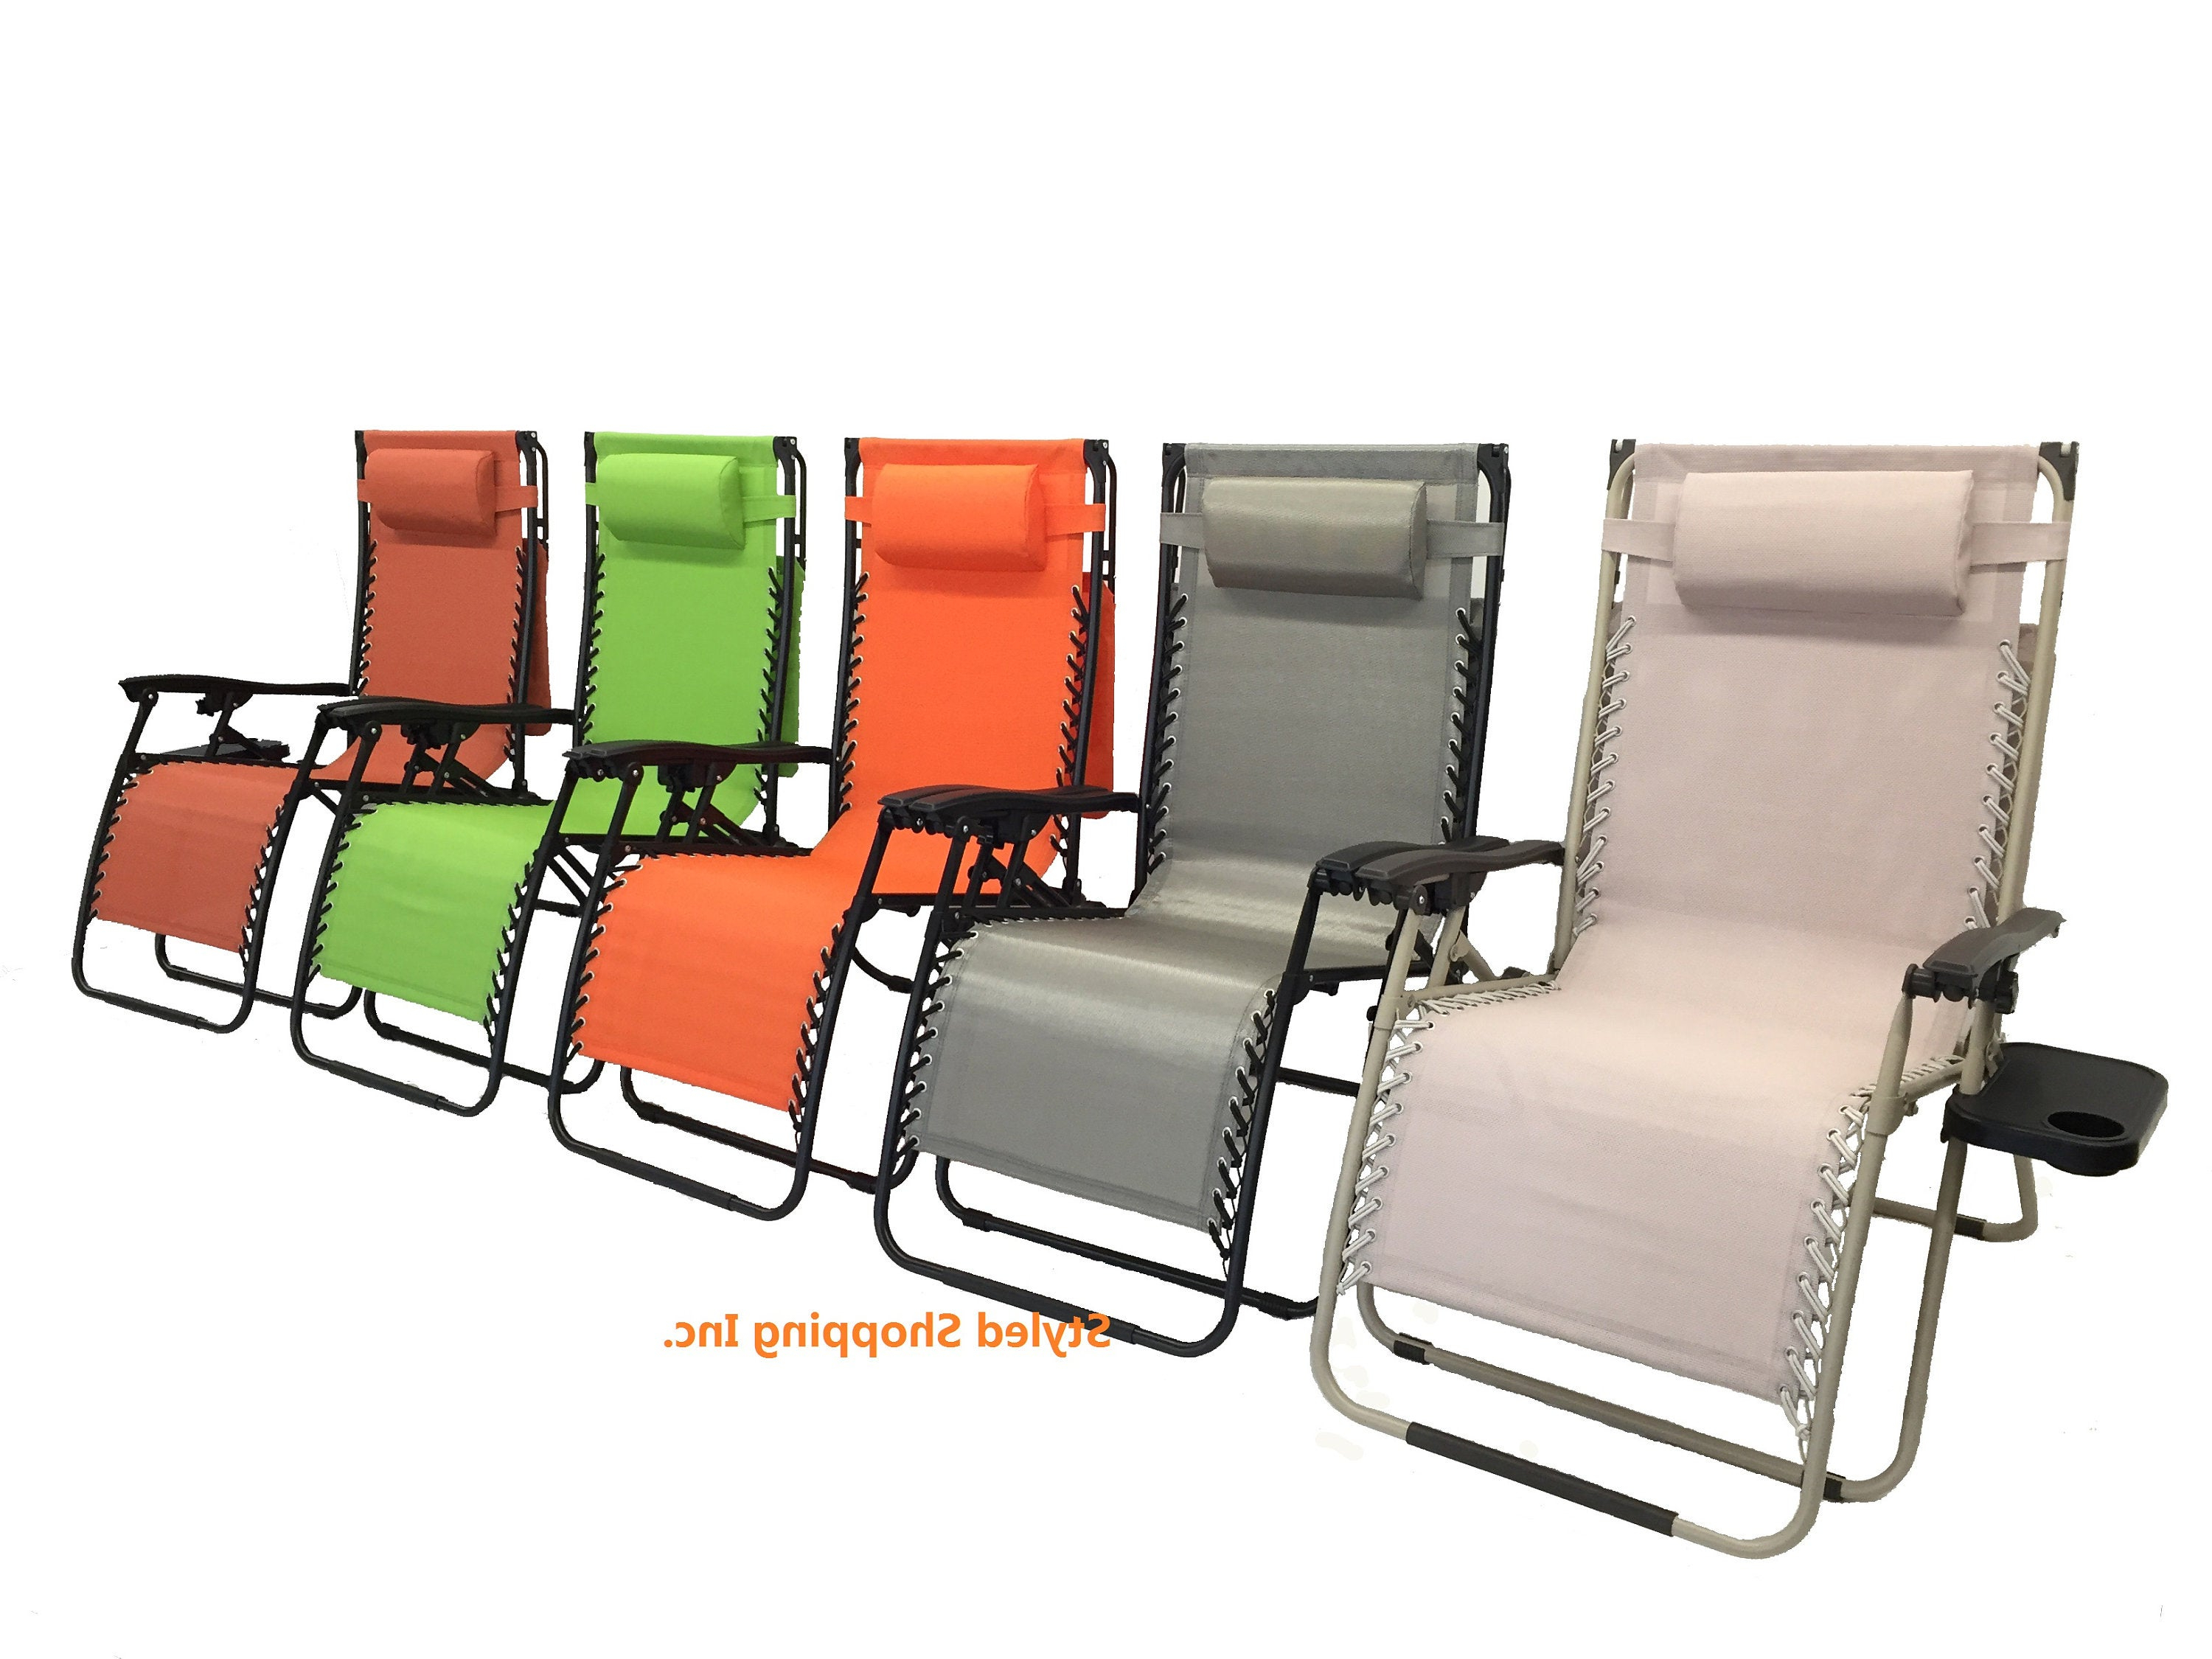 2020 Deluxe Padded Chairs With Canopy And Tray Pertaining To Deluxe Extra Large Oversized Zero Gravity Chair With Canopy And Tray (View 12 of 25)